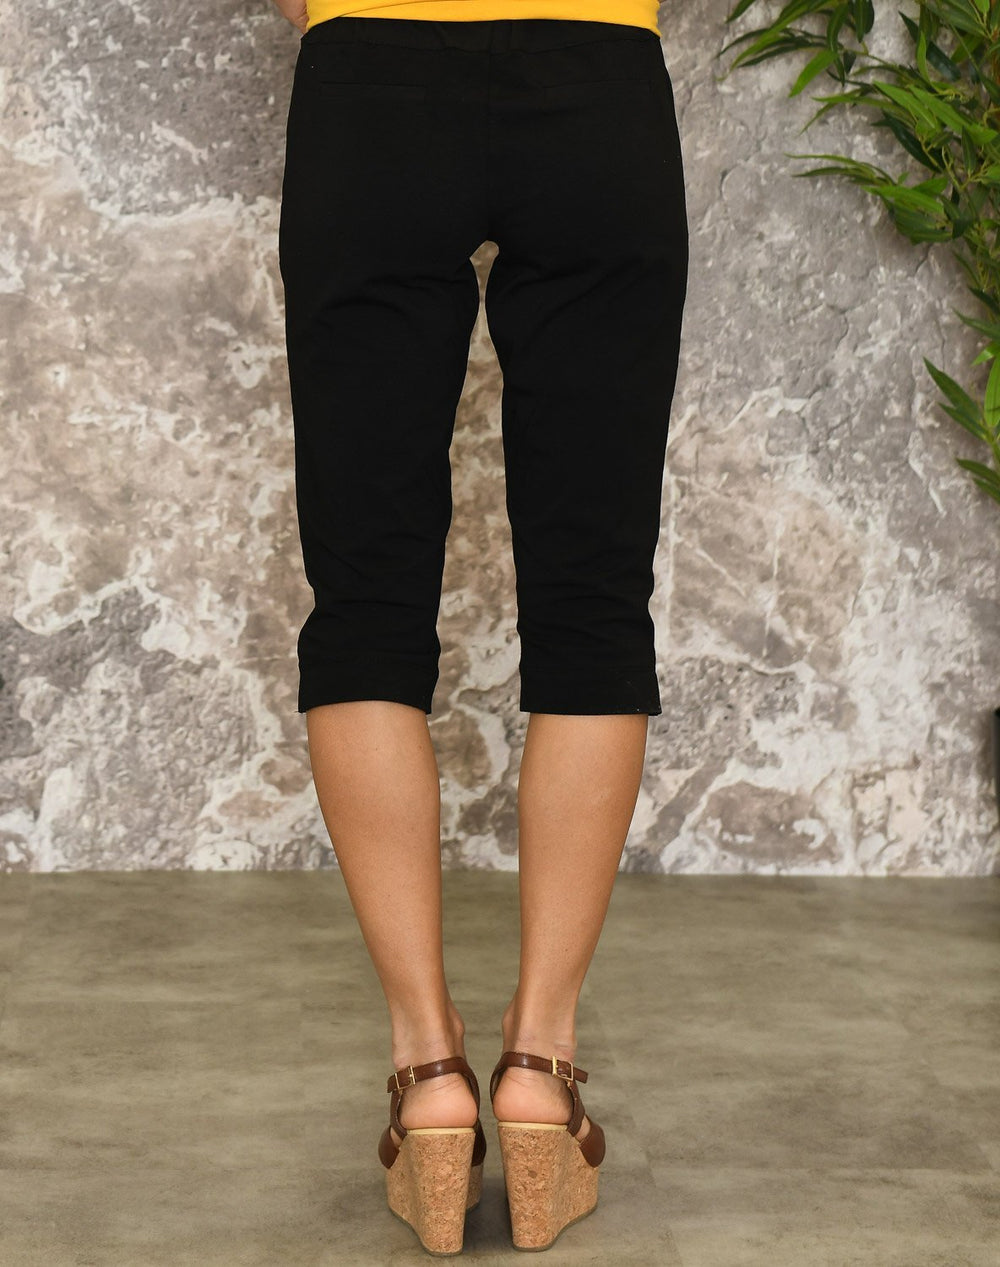 Kaffe KAjillian Vilja capri pants black deep - Online-Mode